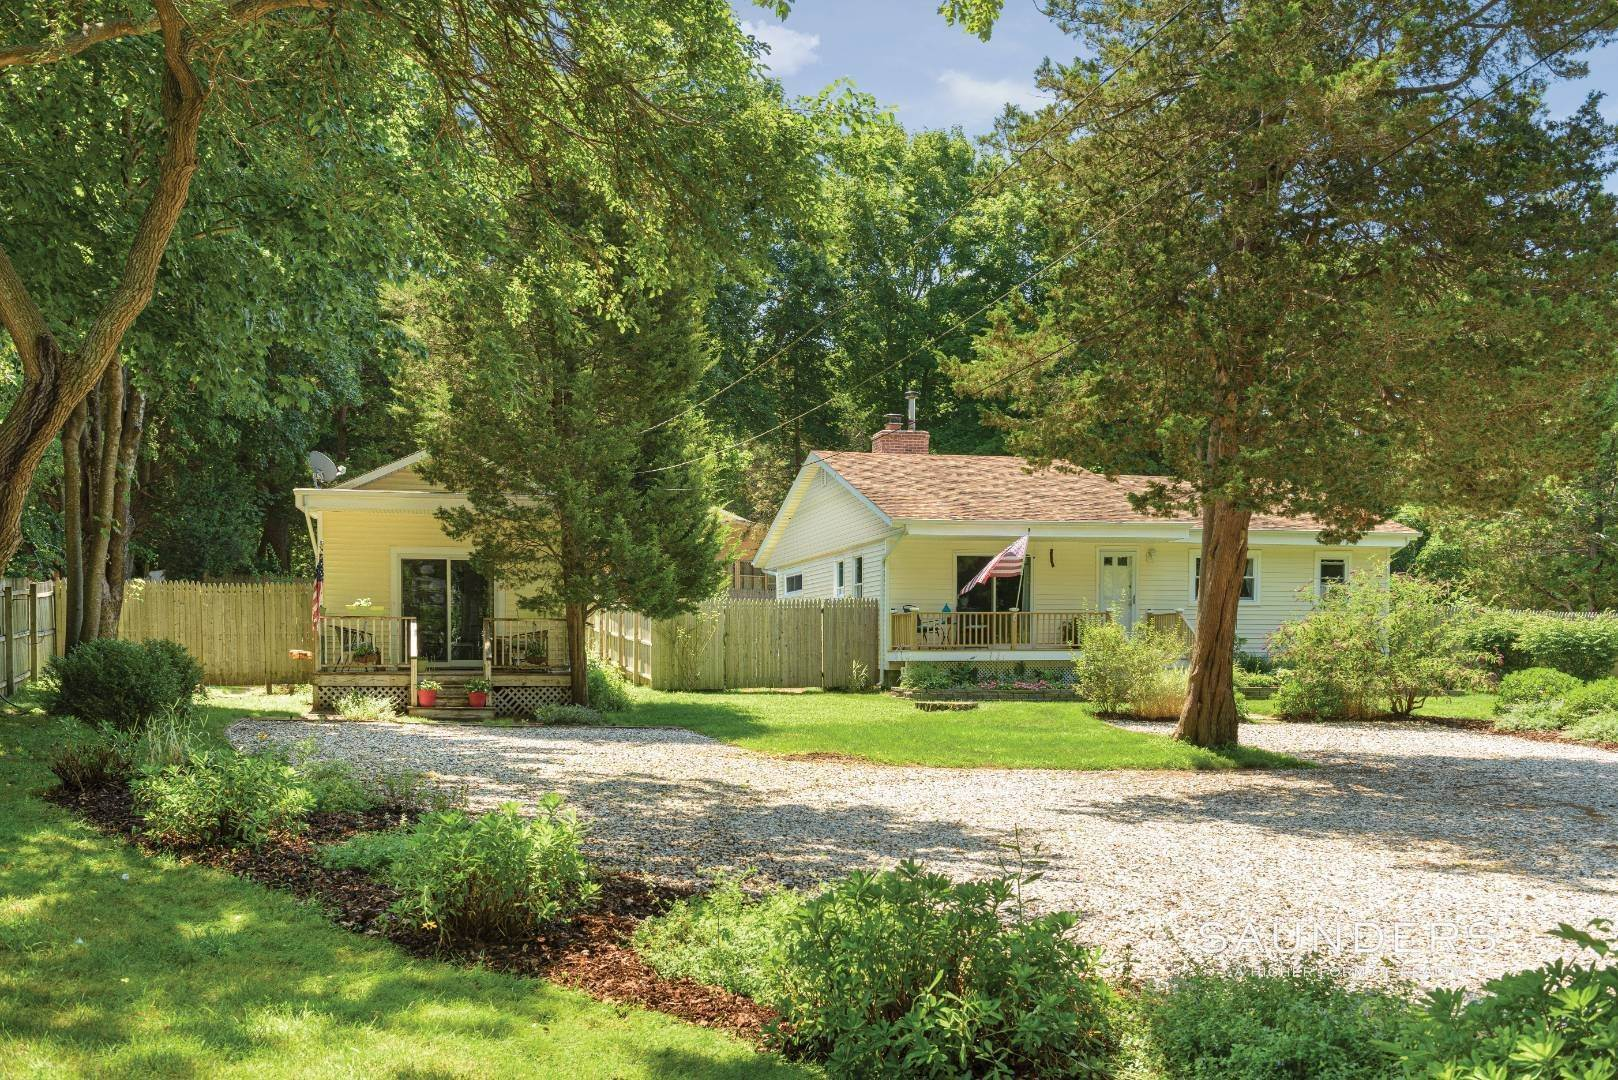 Single Family Homes for Sale at 4 Bedroom 2 Bath Home With Separate Legal 1 Bedroom Cottage 2996 Noyack Road, Sag Harbor, Southampton Town, NY 11963